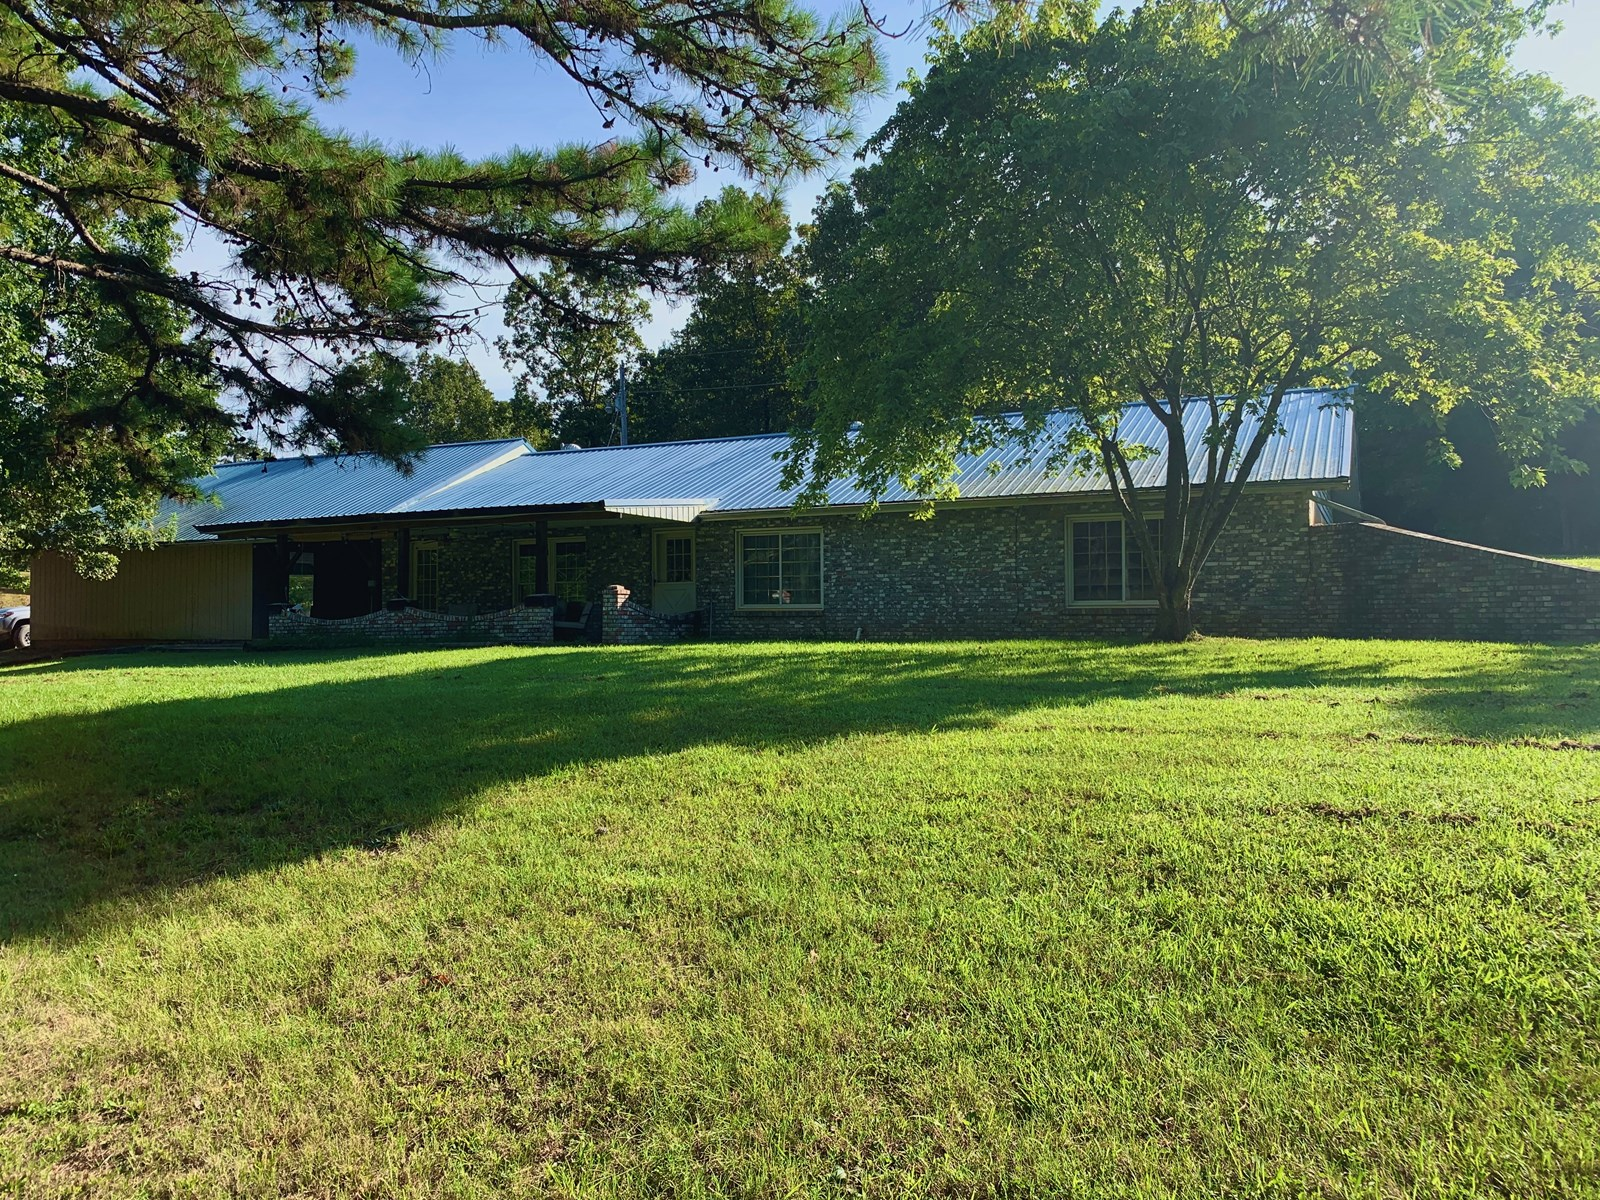 4 Bedroom 2 Bath Earth Bound Home on 2 Acres